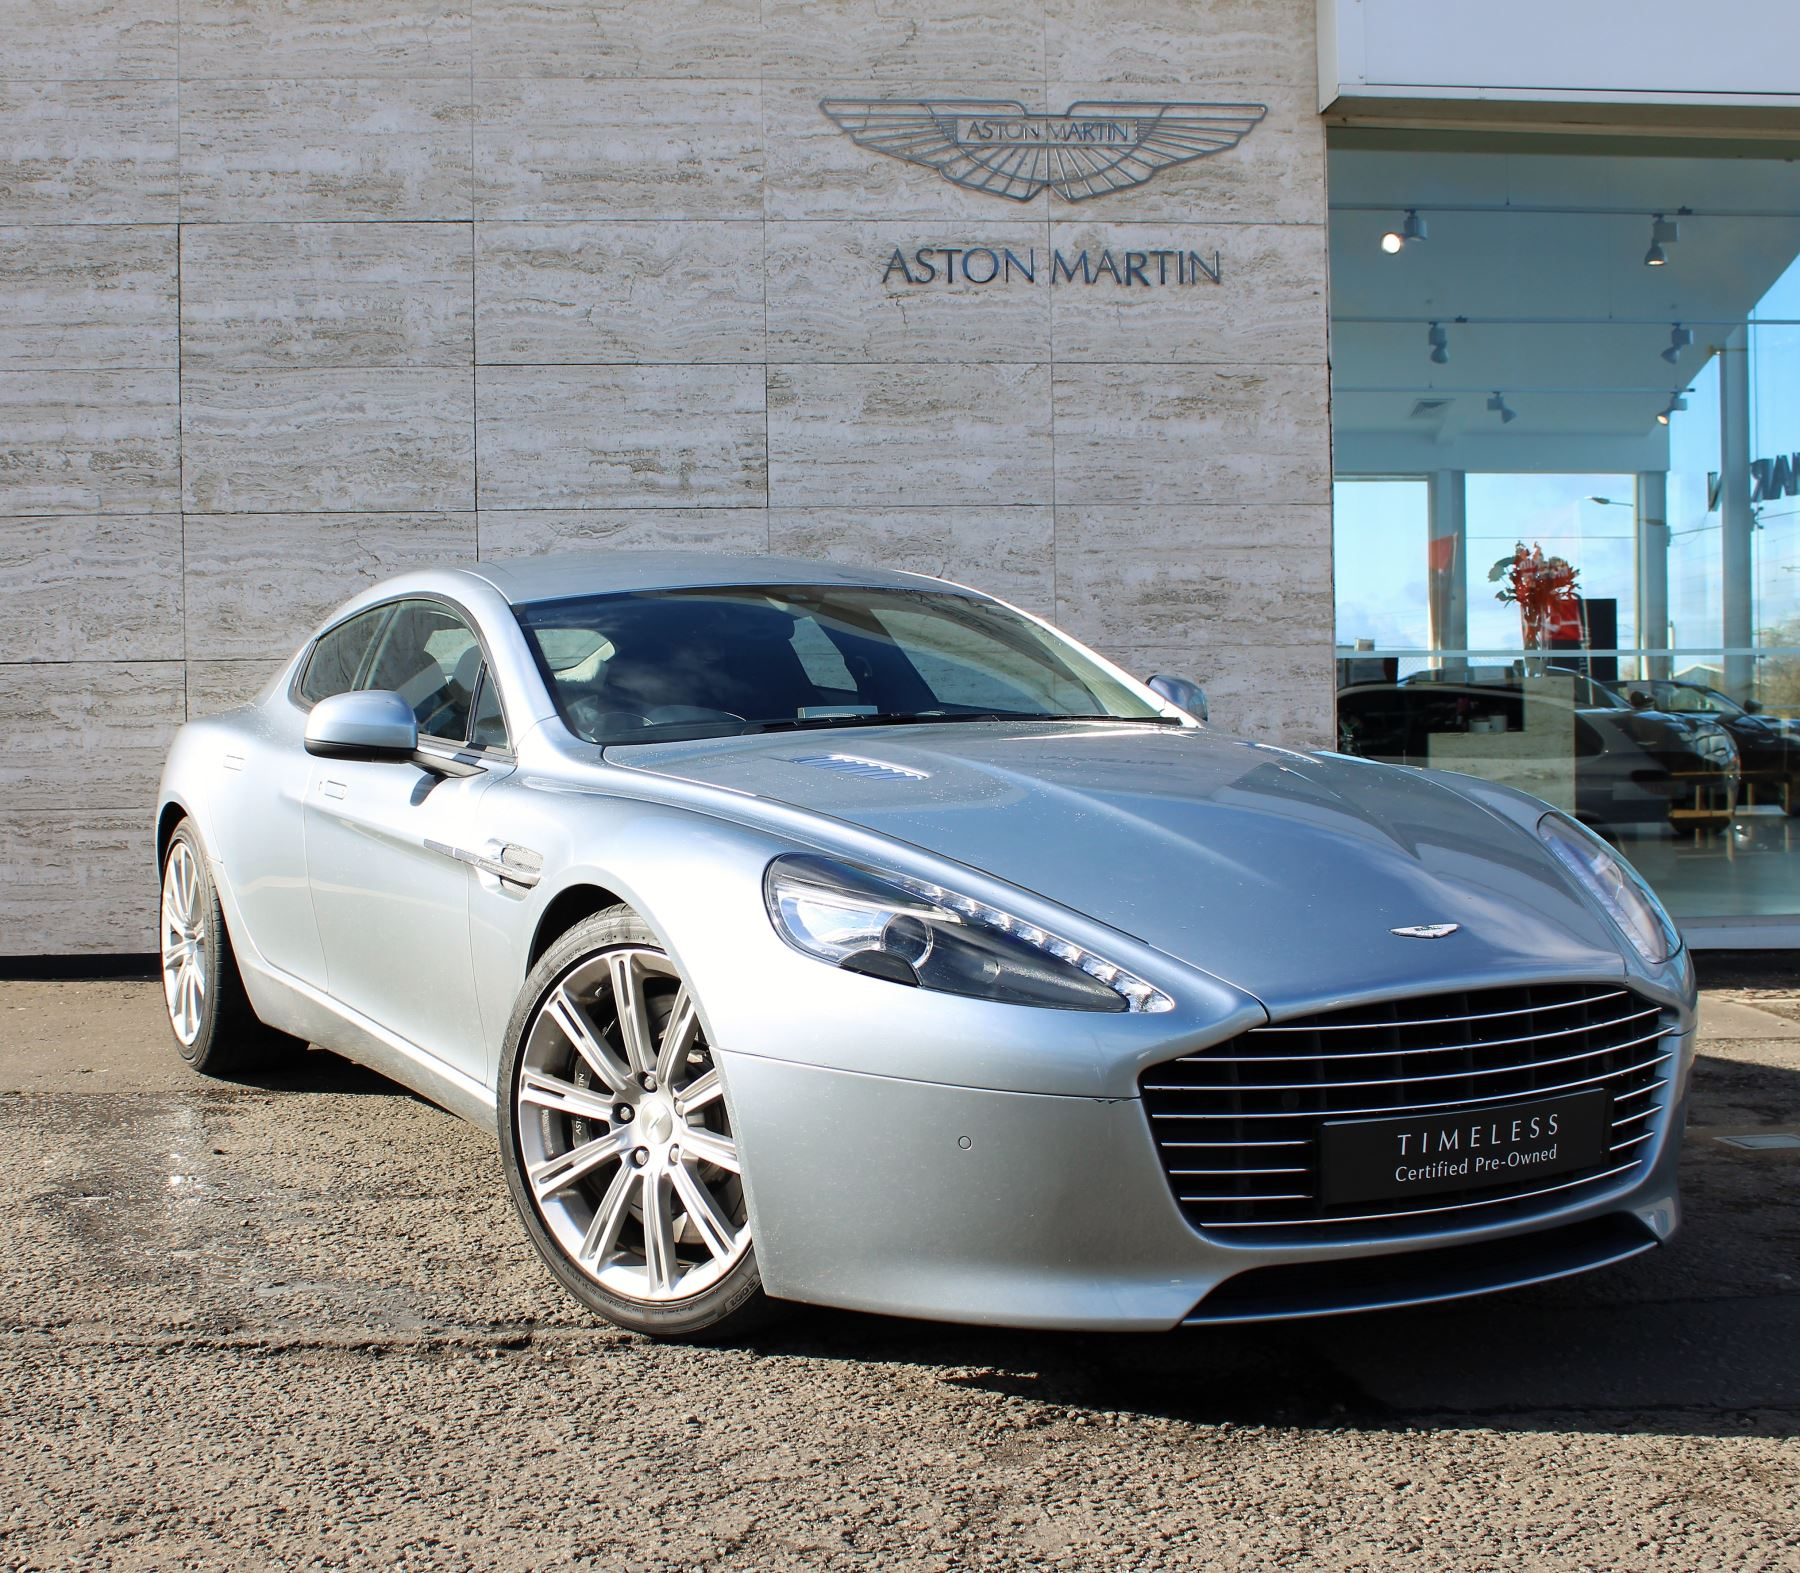 Aston Martin Rapide S V12 [552] 4dr Touchtronic III 5.9 Automatic 5 door Saloon (2016)